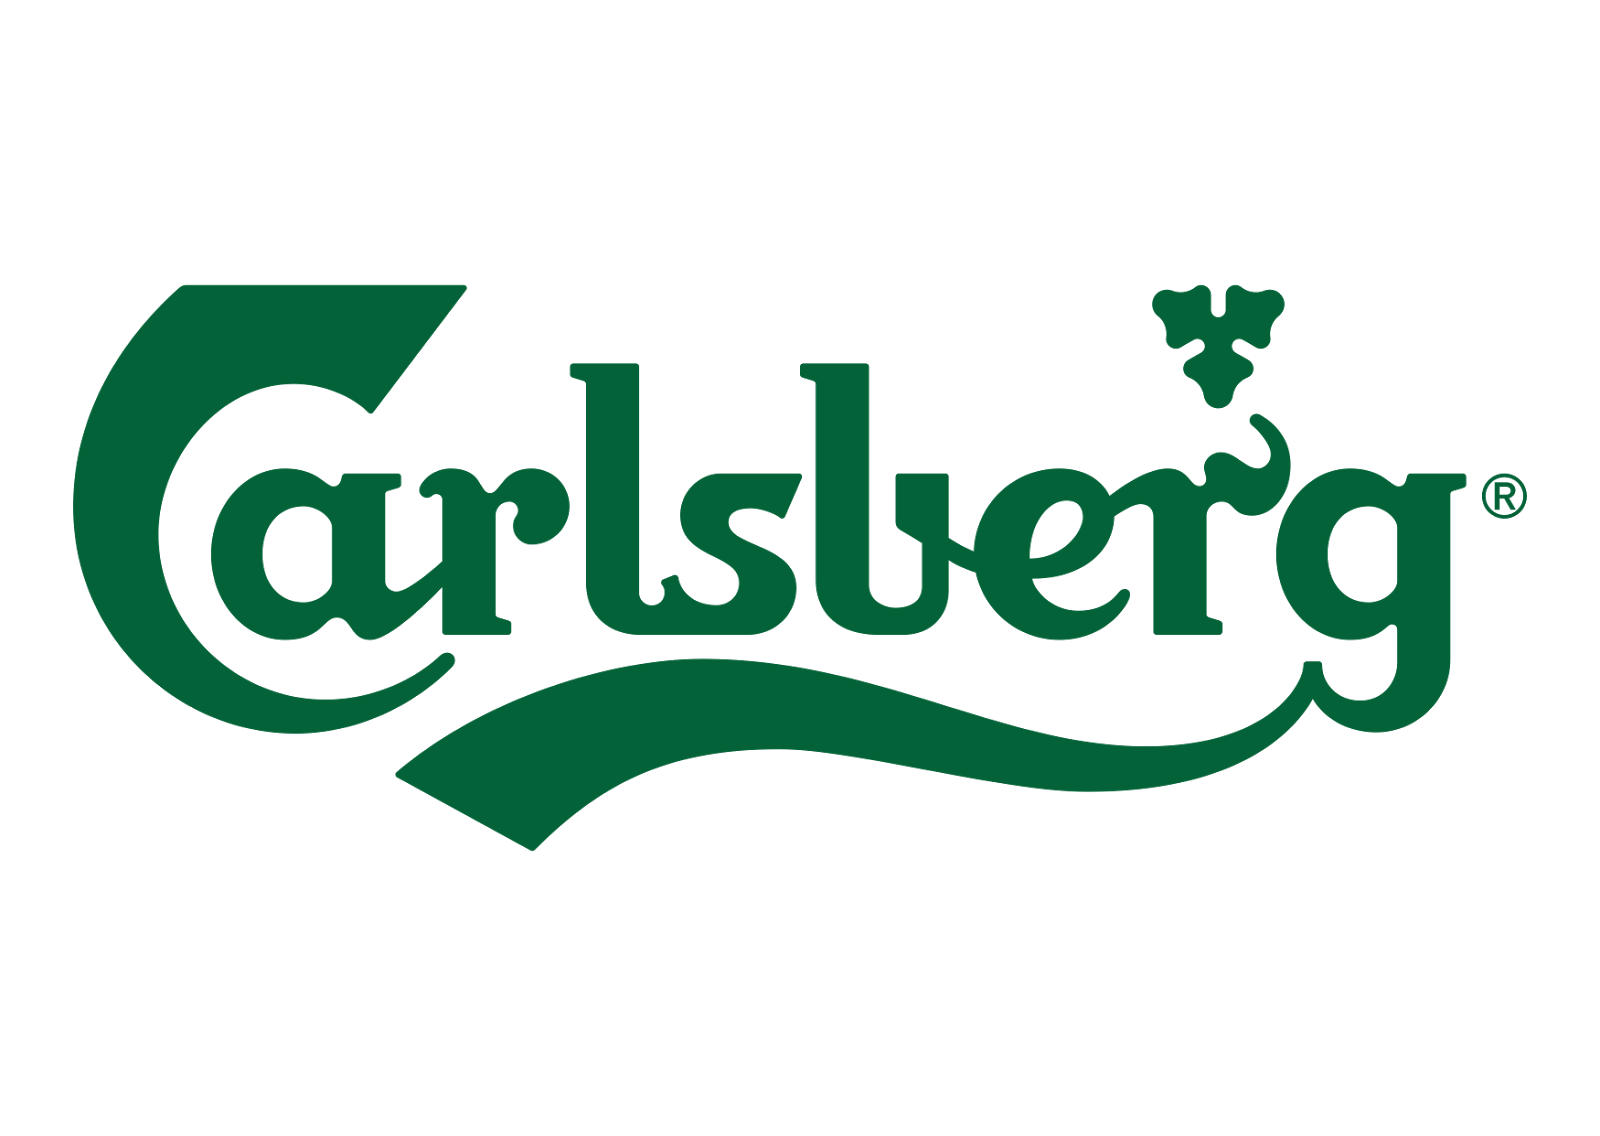 Carlsberg Logo Wallpaper